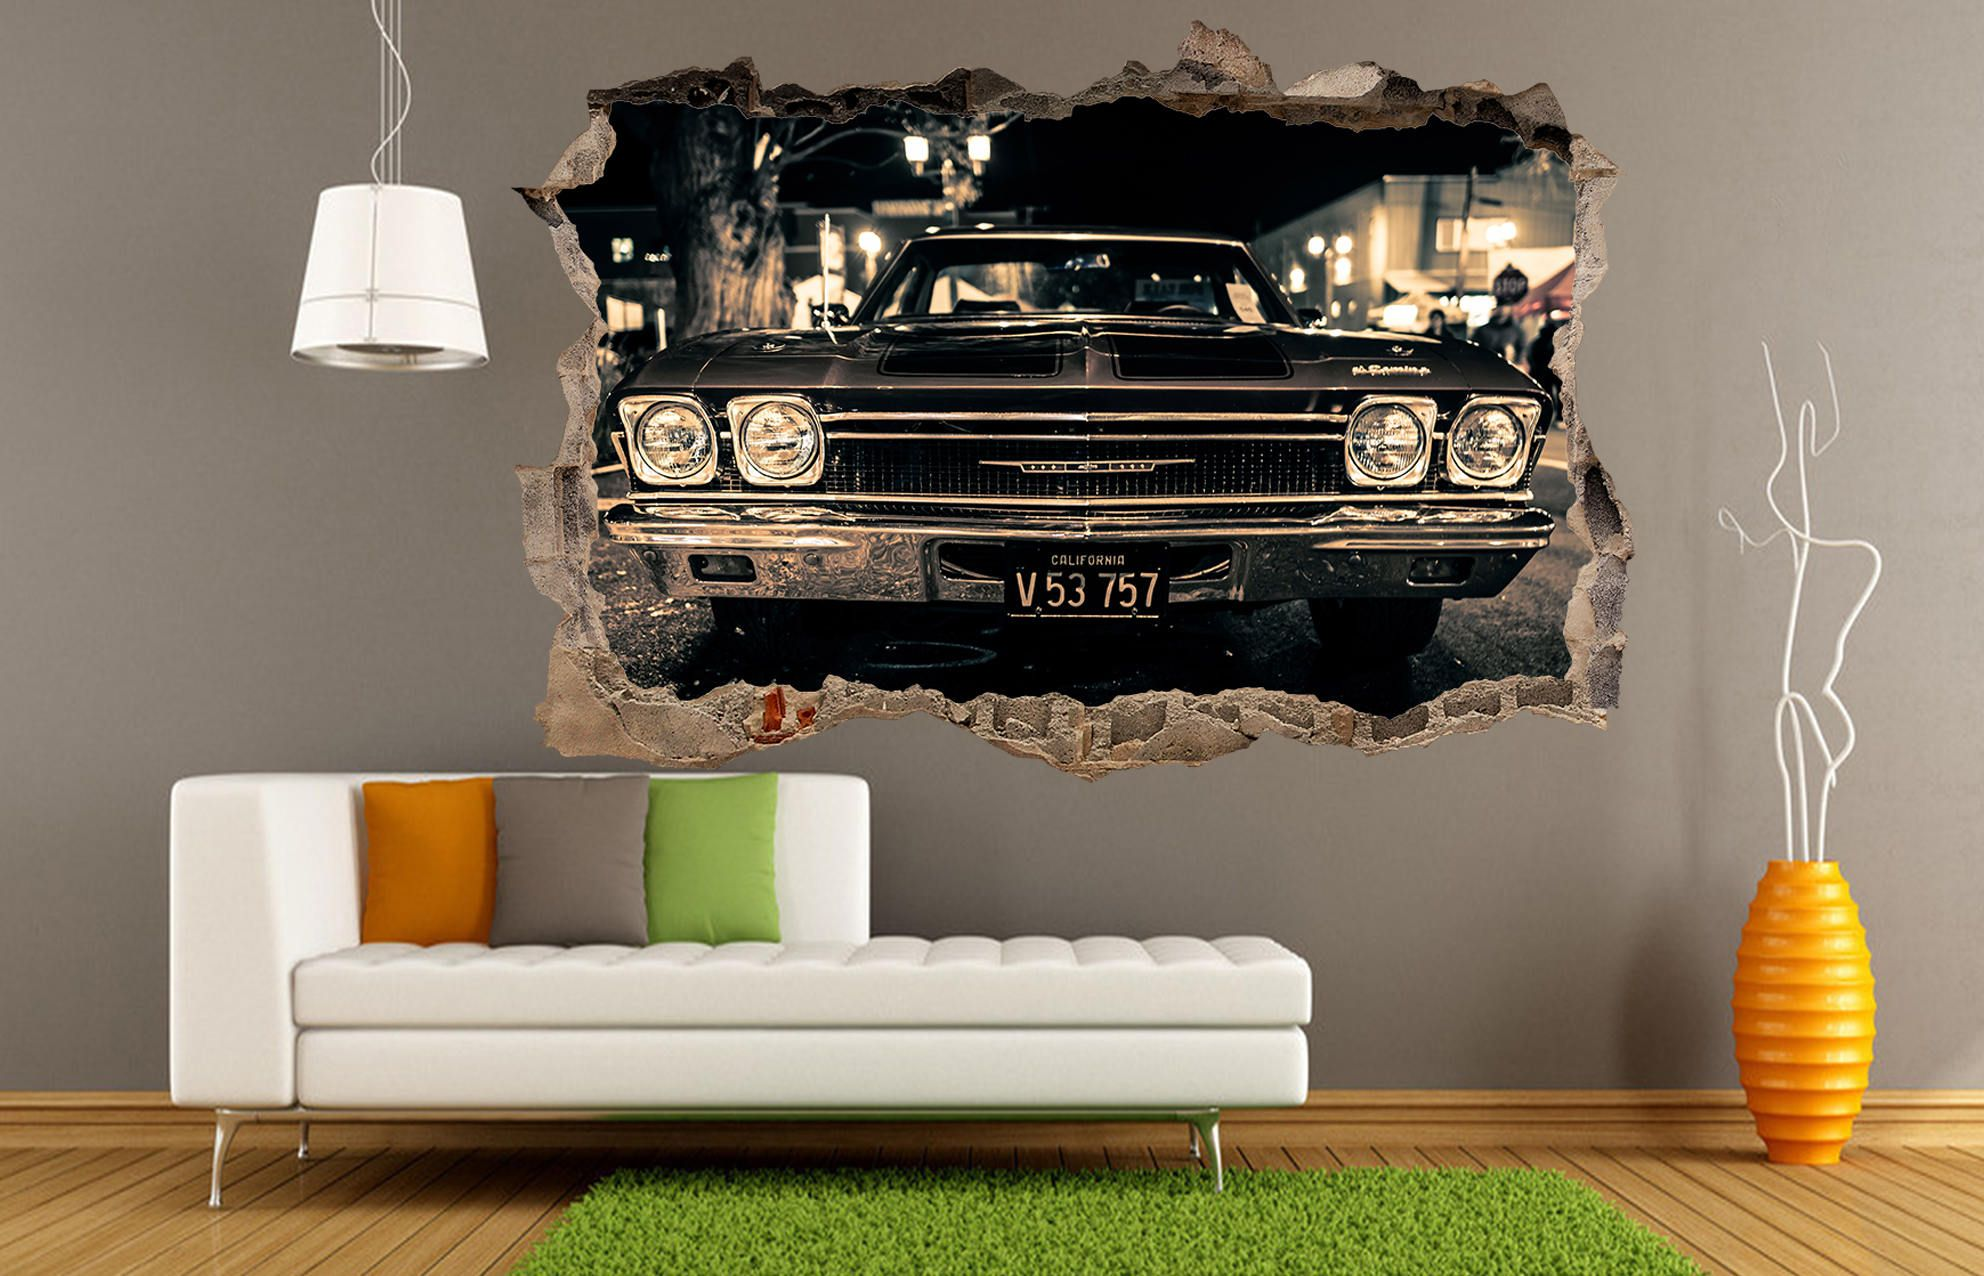 3d Wall Decal Print Old Car Classic Cars Chevrolet Impala Etsy 3d Wall Decals Print Decals Car Chevrolet